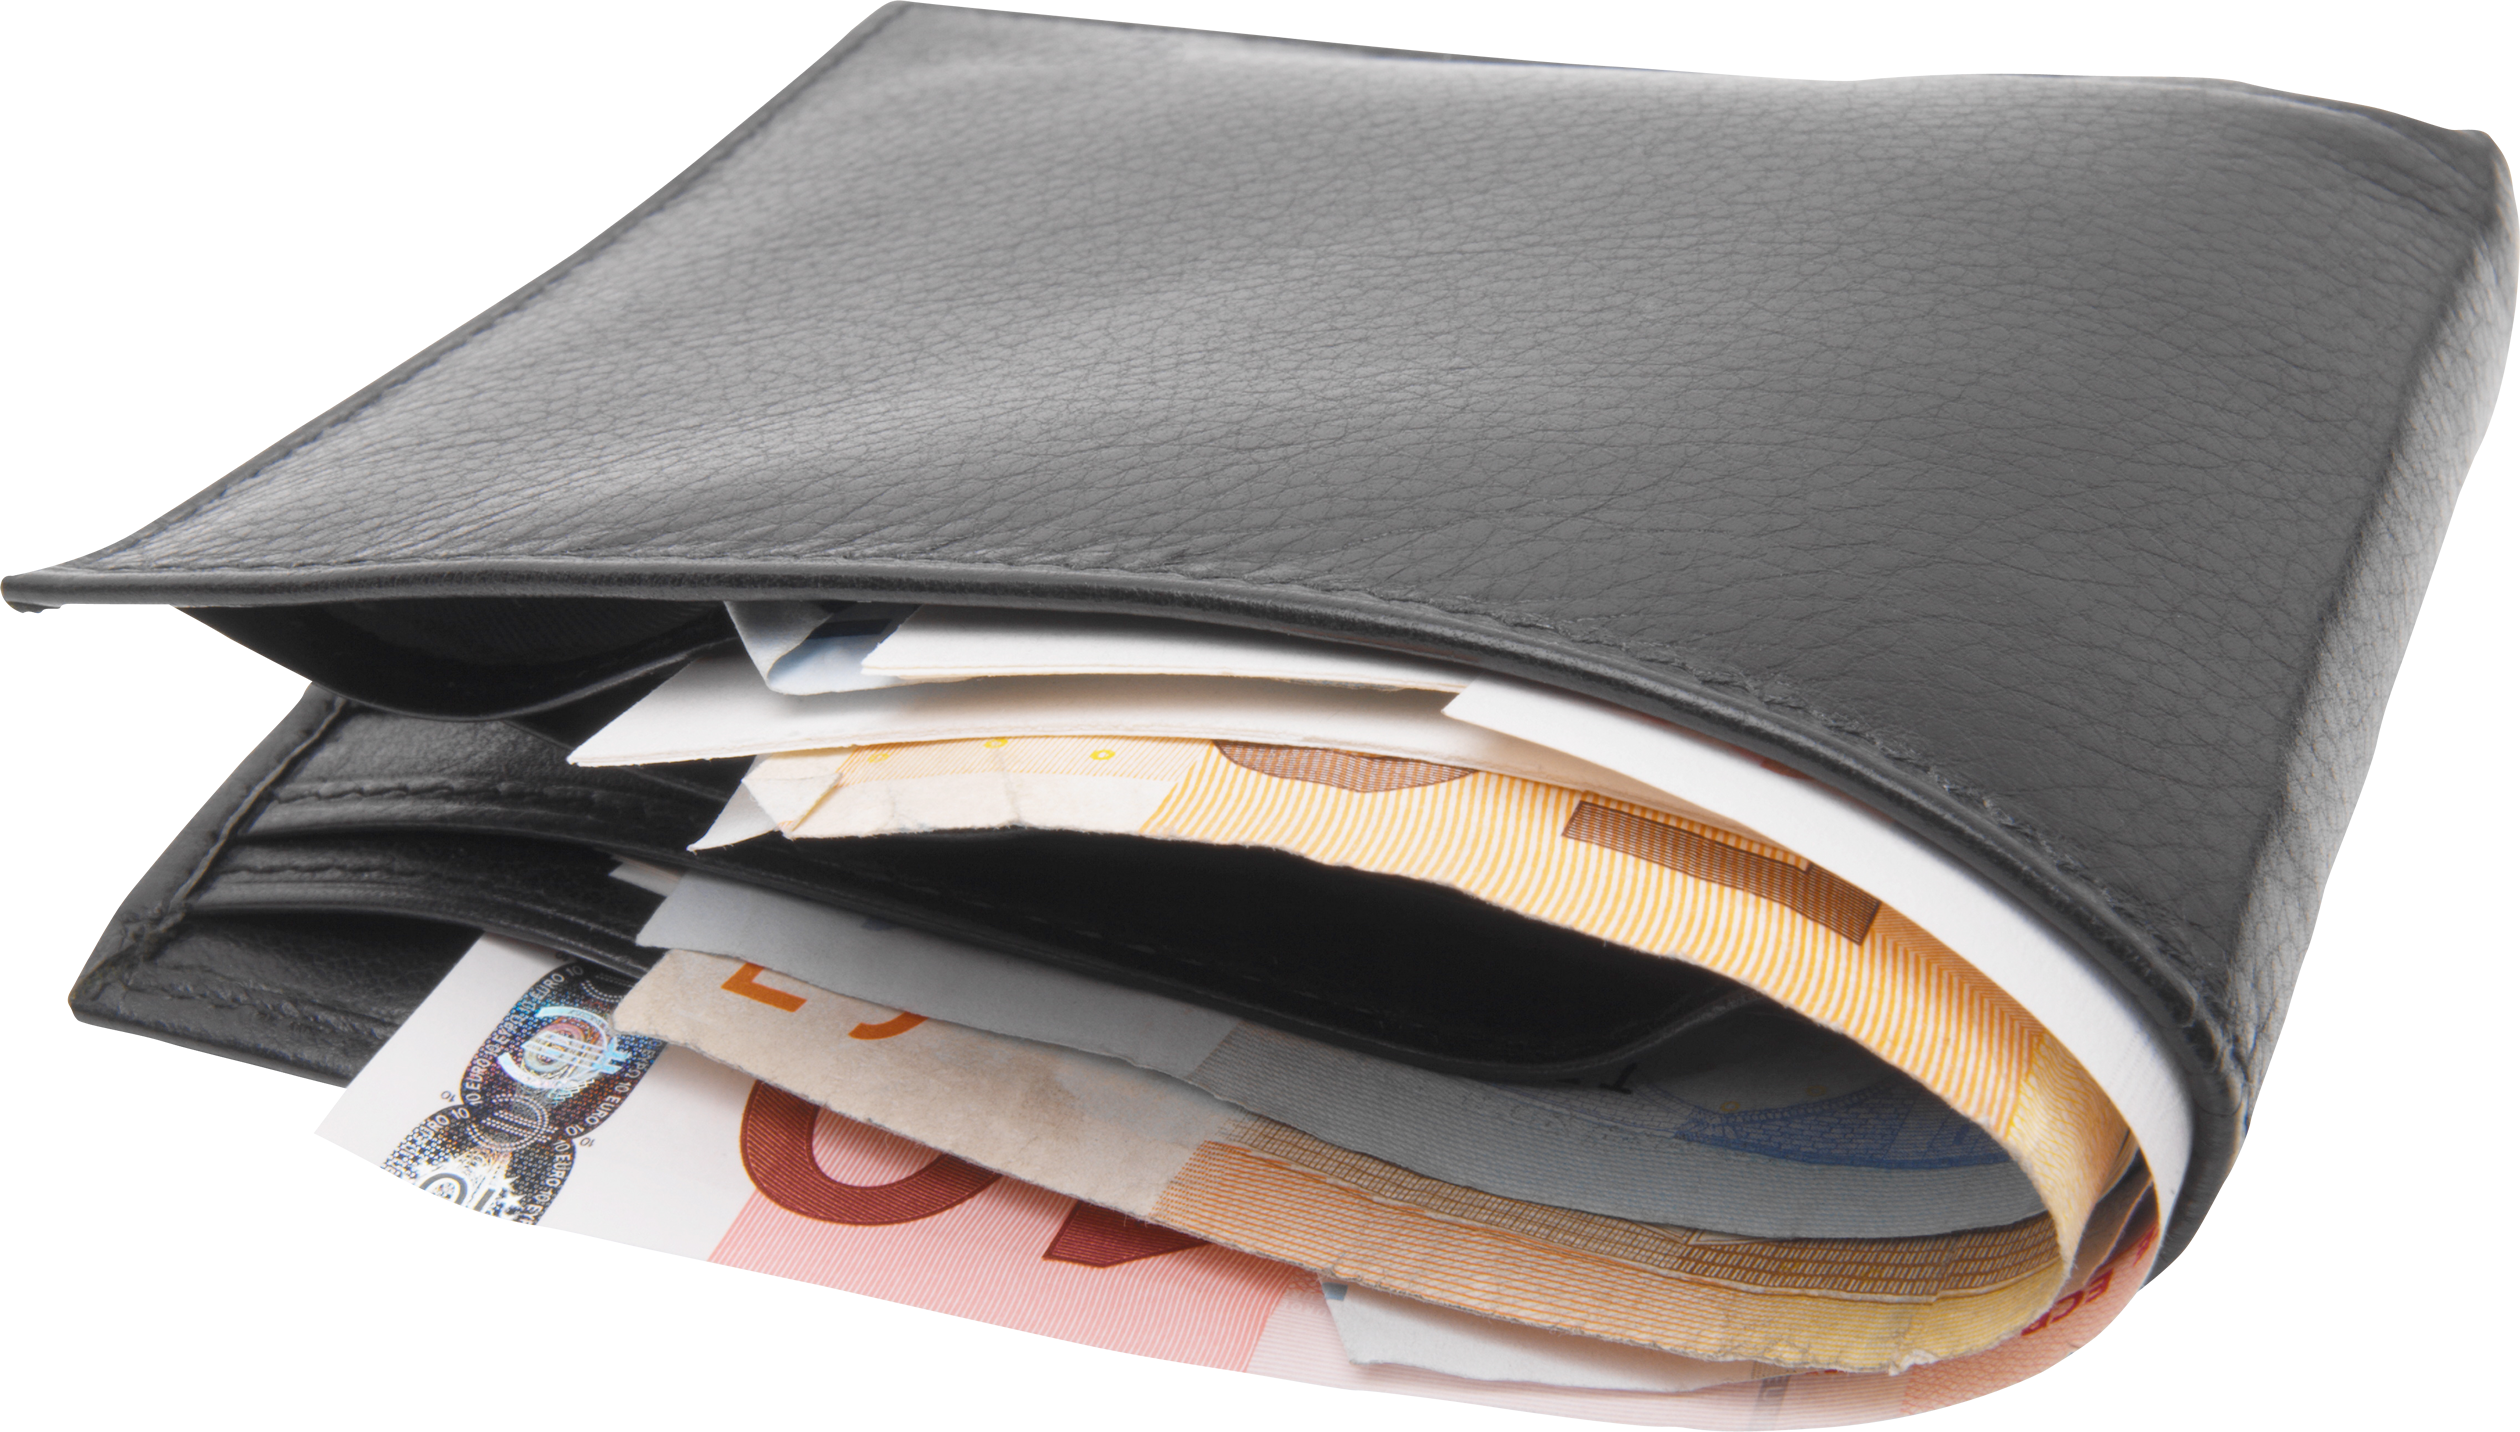 Wallet clipart gents. With money transparent png